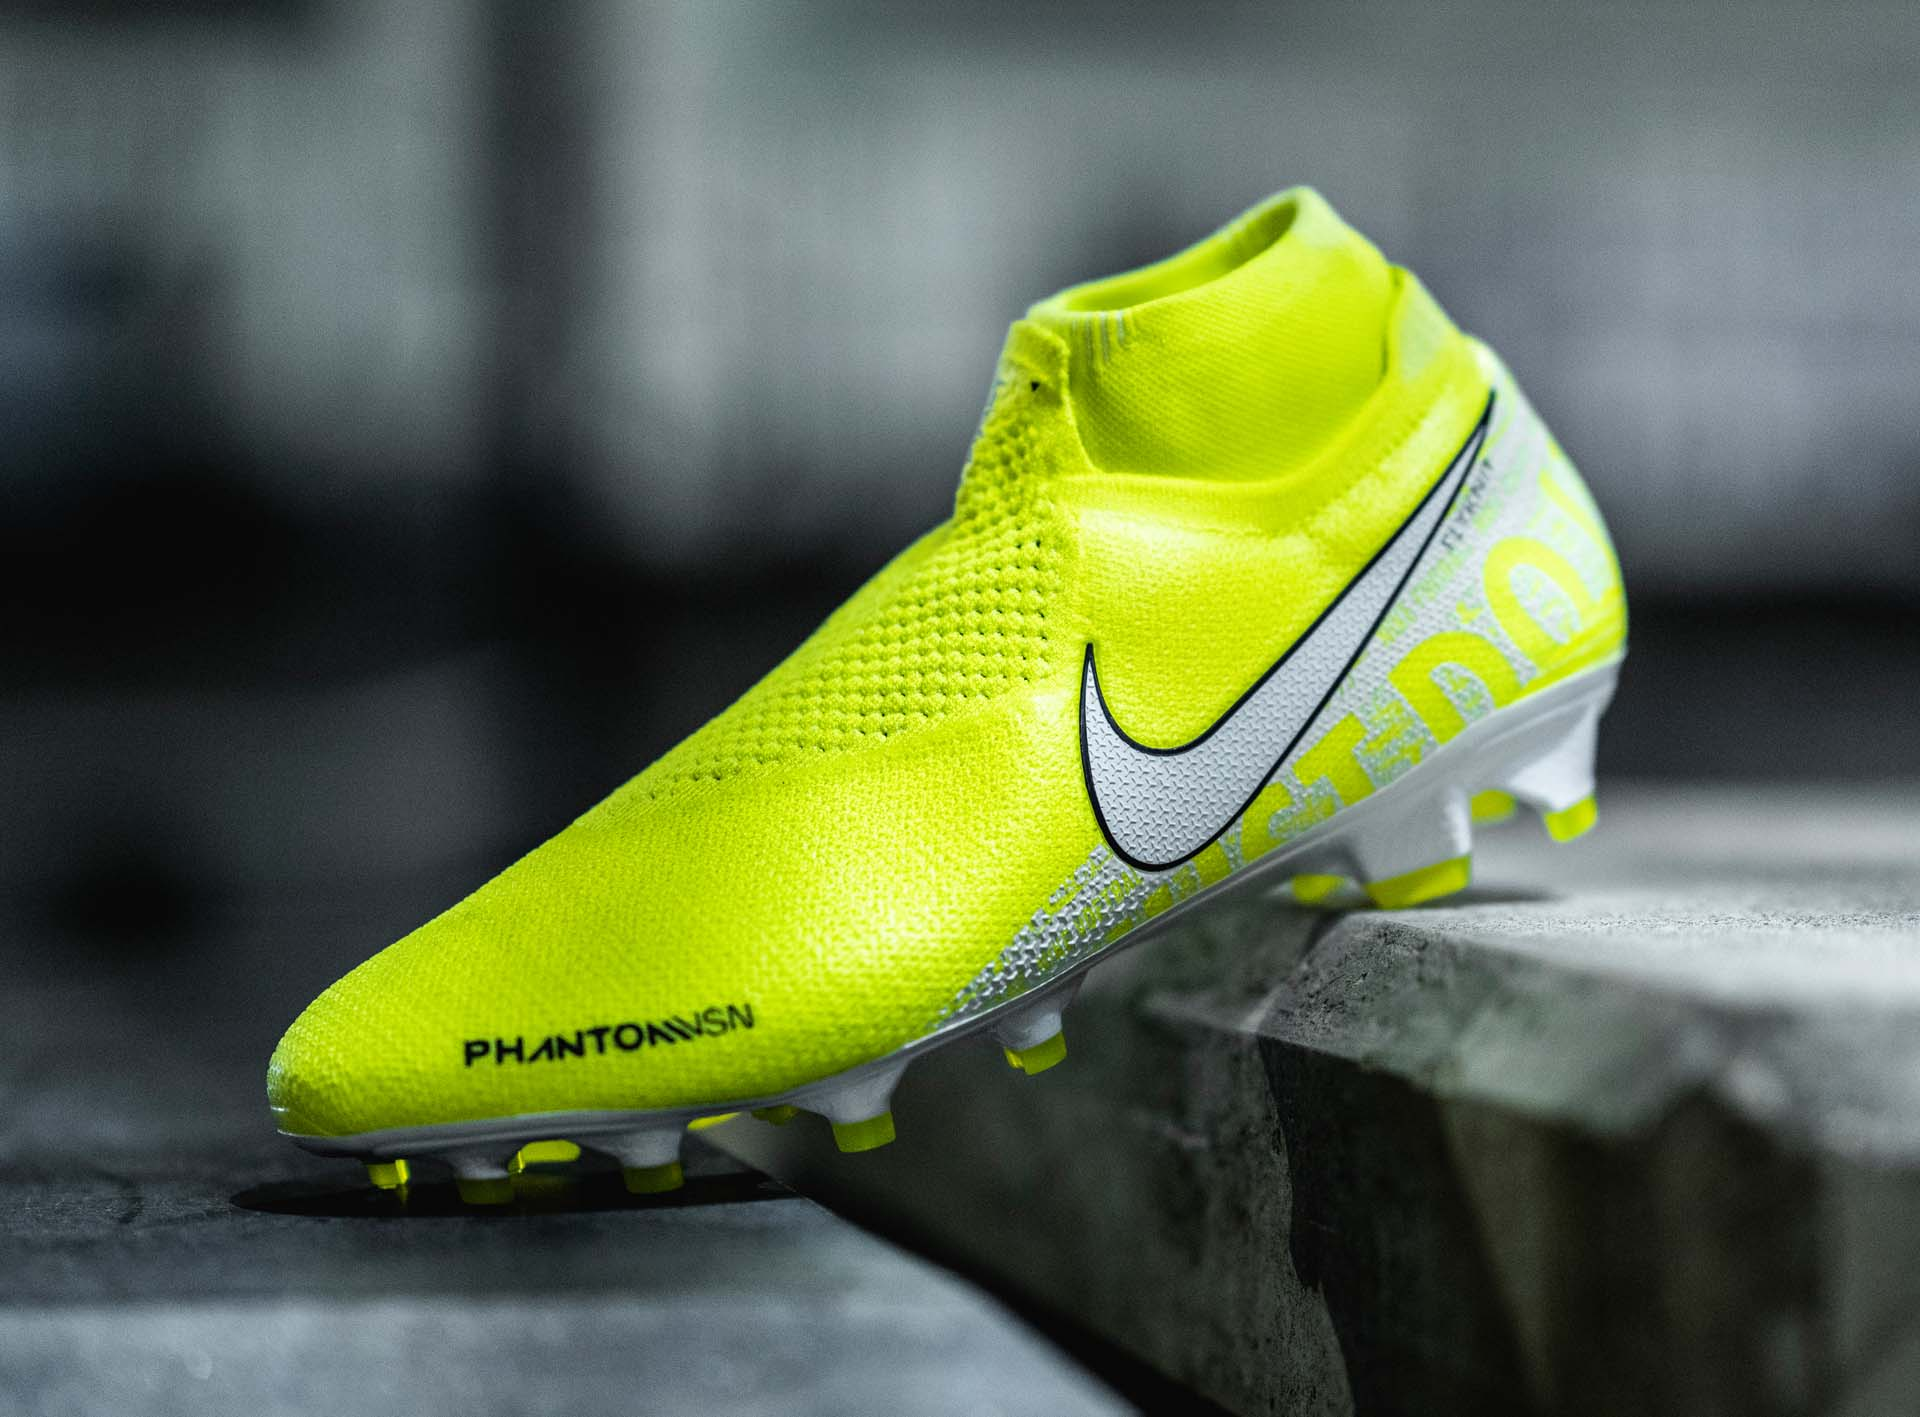 5-nike-phantom-vsn-new-lights.jpg